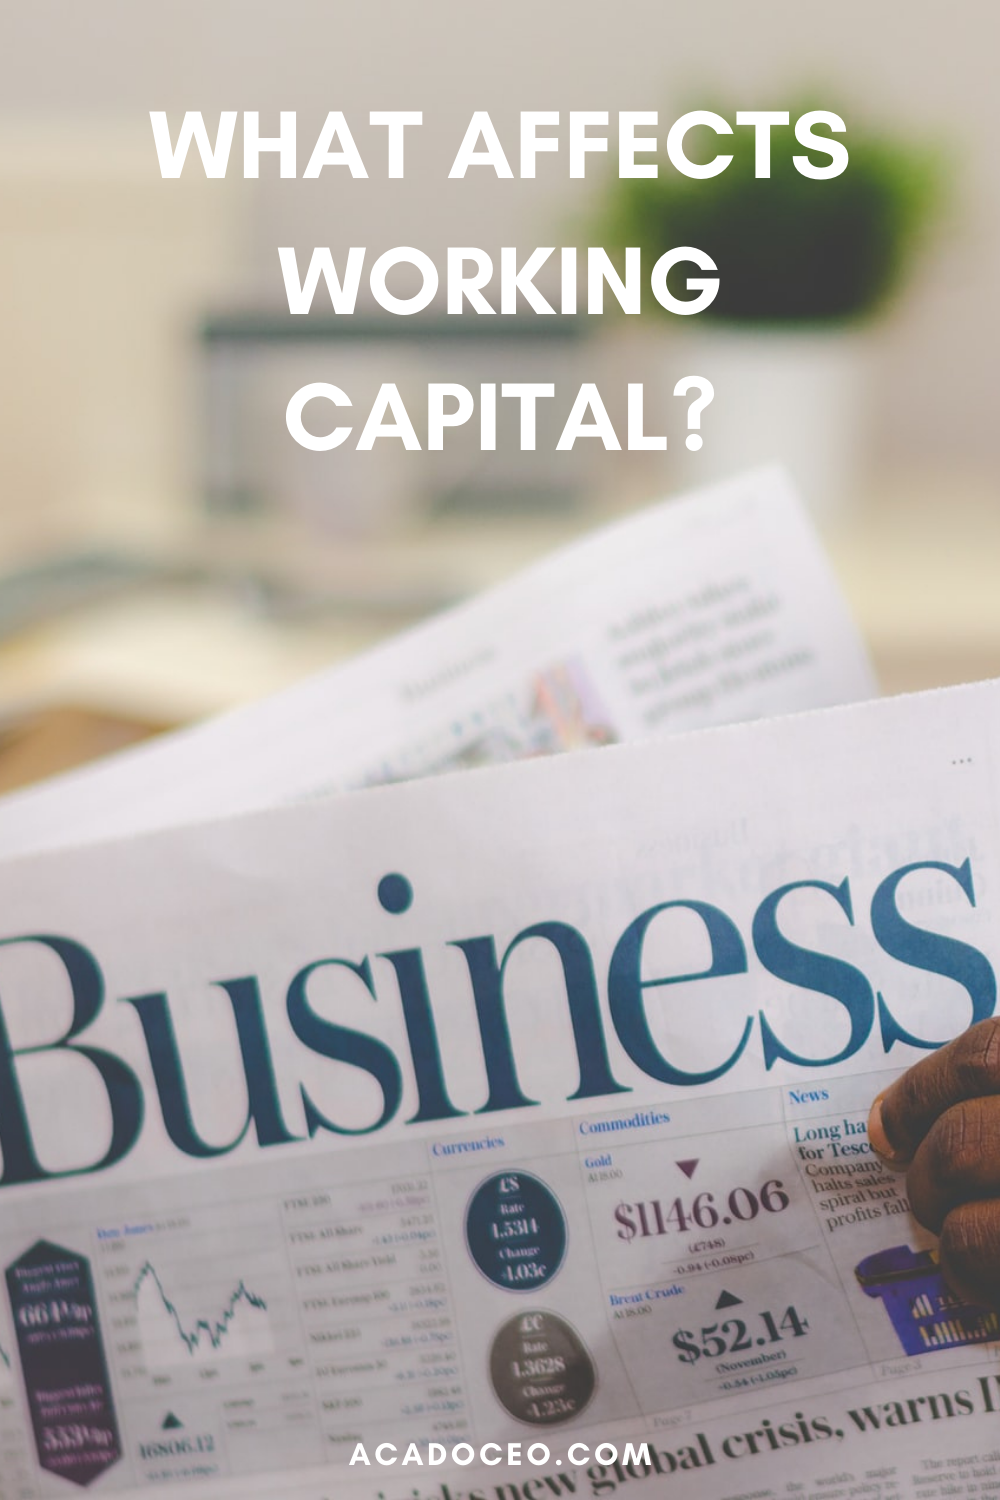 WHAT AFFECTS WORKING CAPITAL?